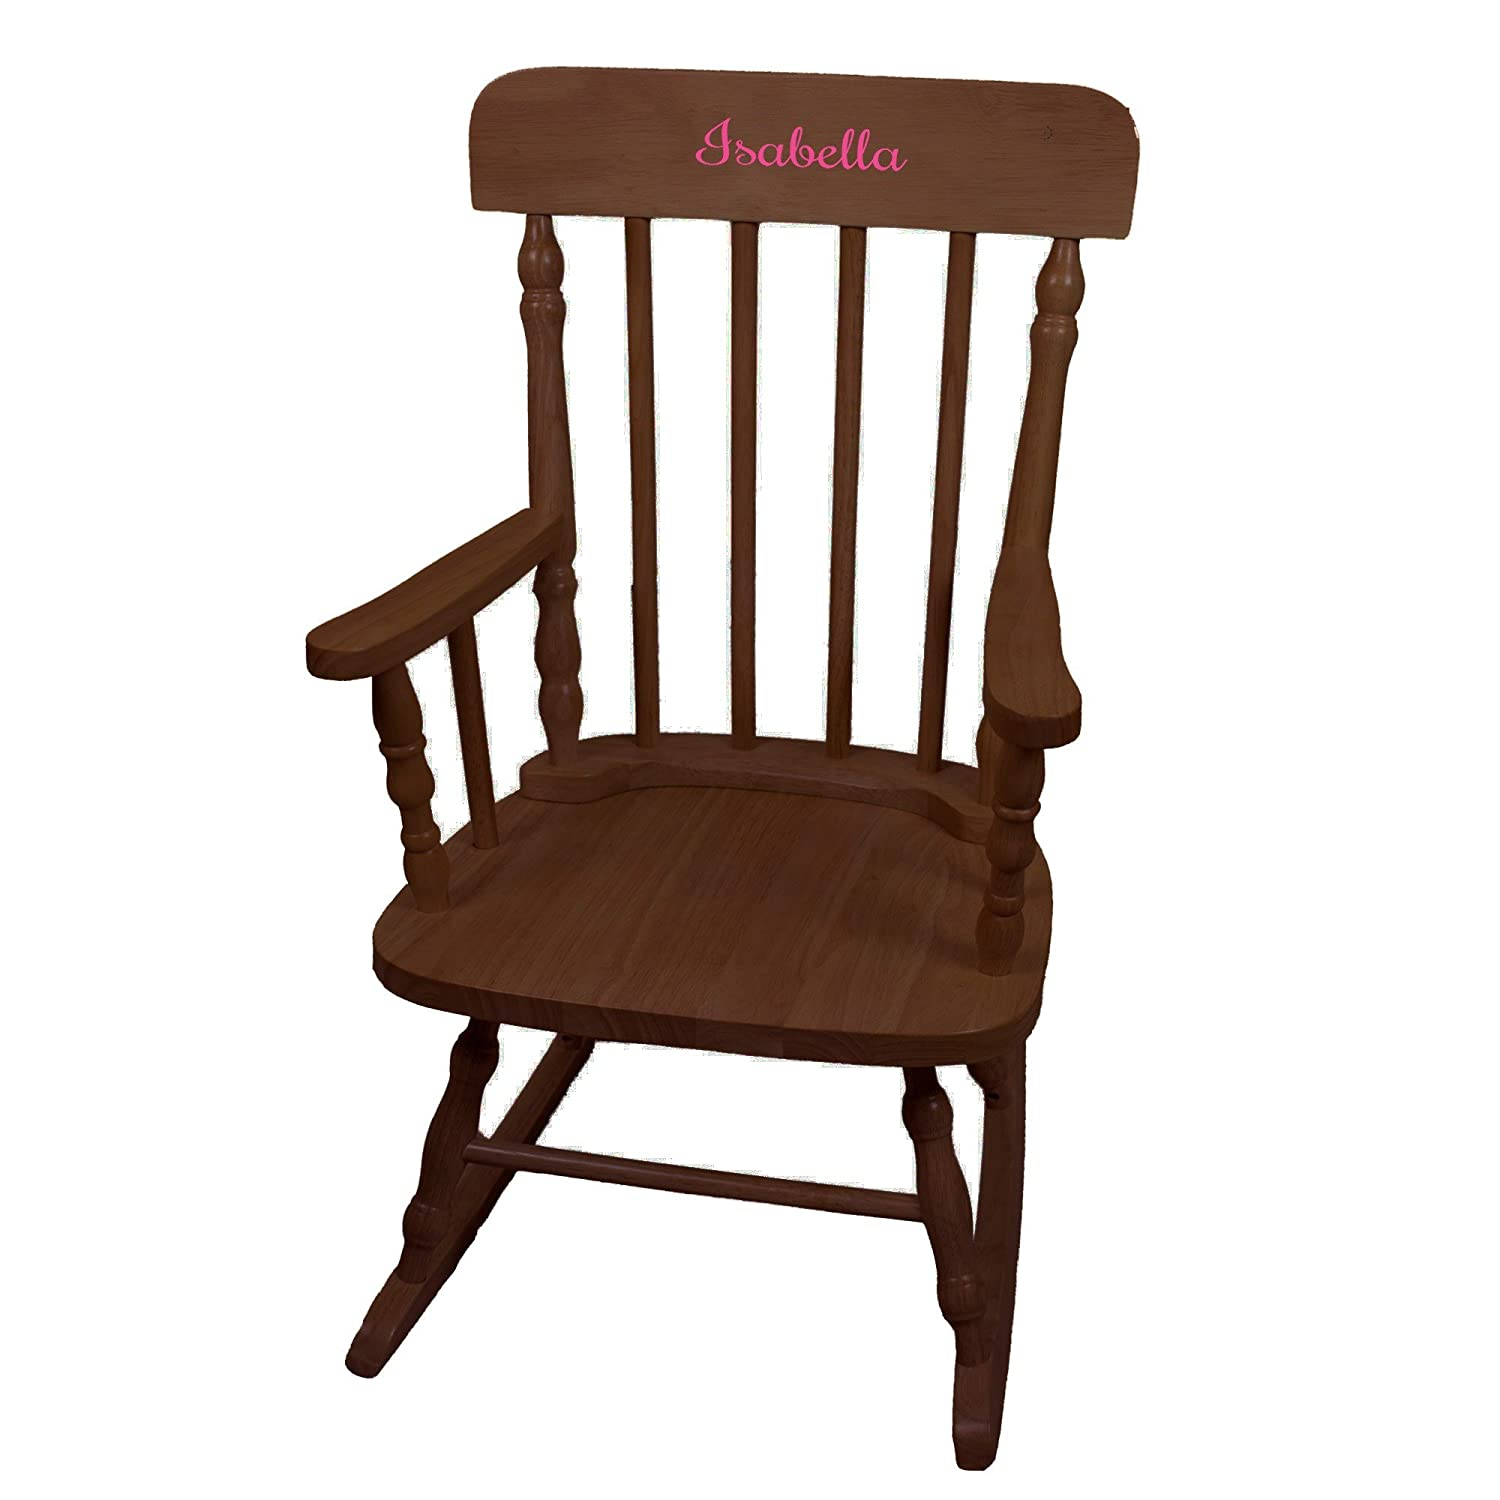 Personalized Girls with Name Our shop OFFers the best service only Chair Espresso Wooden Rocking Max 45% OFF